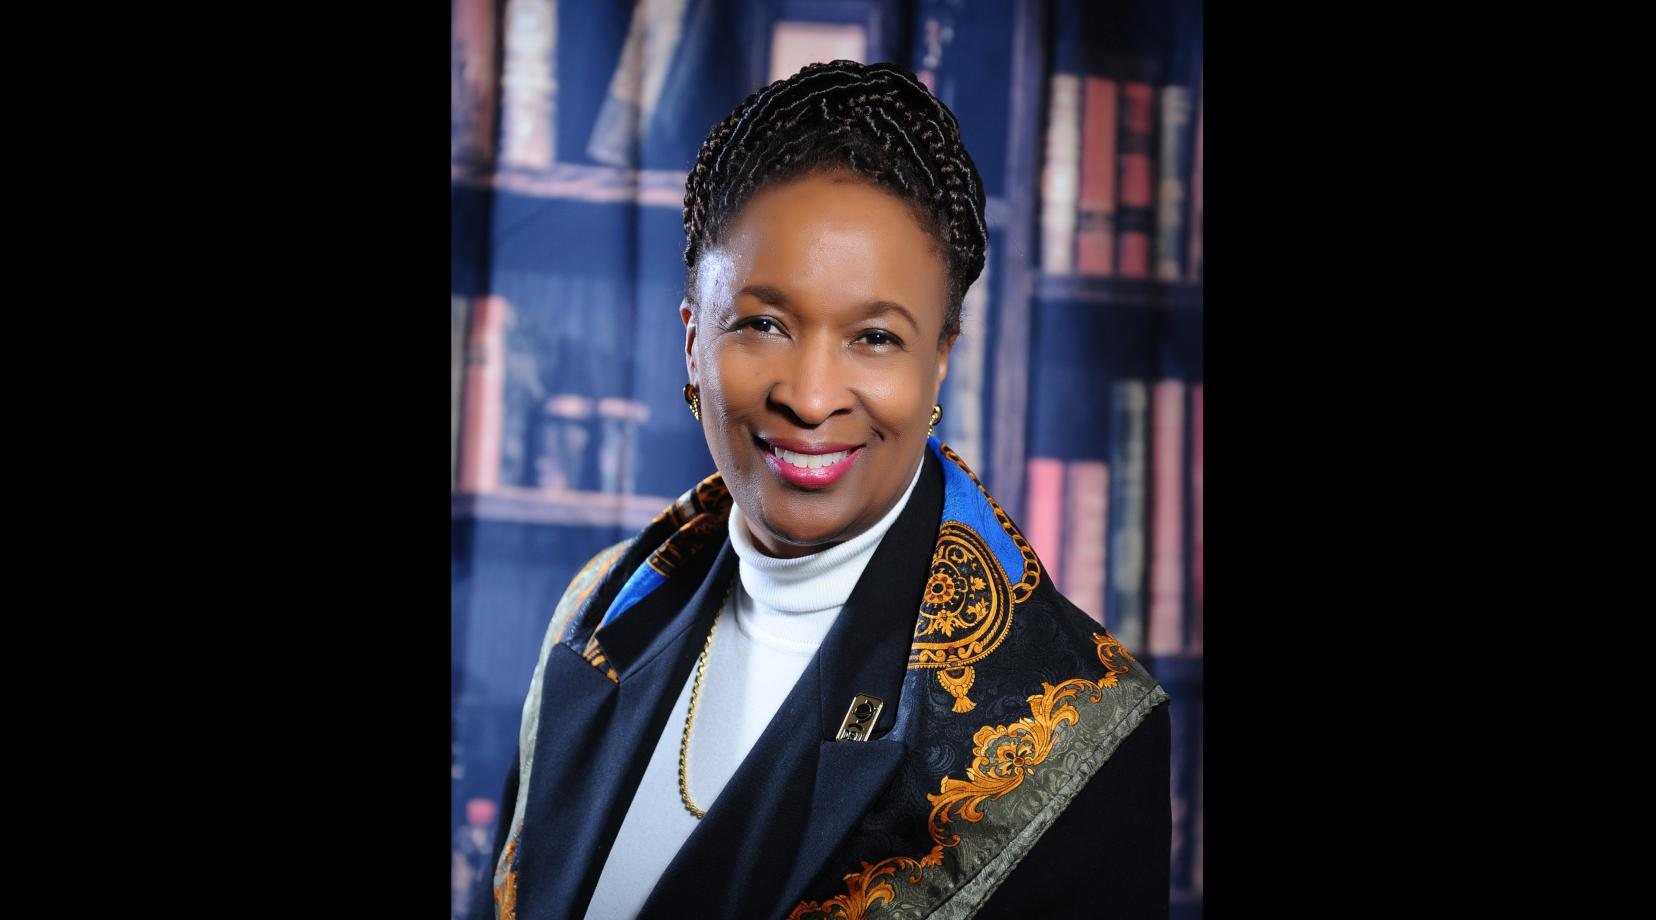 Dr. Marsha Horton is now a member of the Board of Directors of the American Conference of Academic Deans.